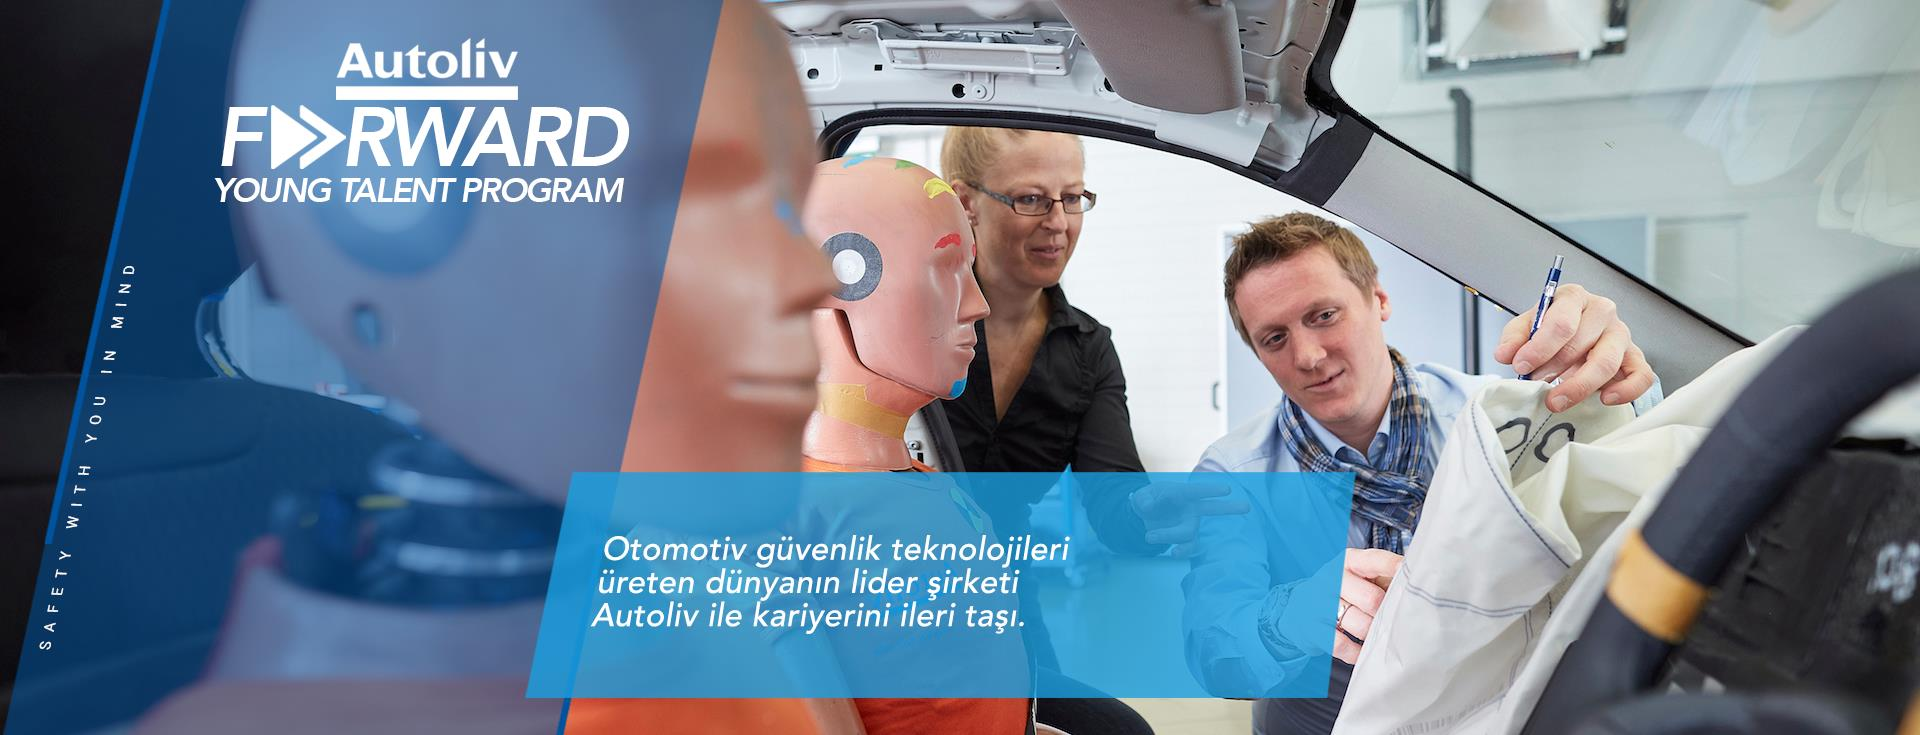 Autoliv Forward Young Talent Program